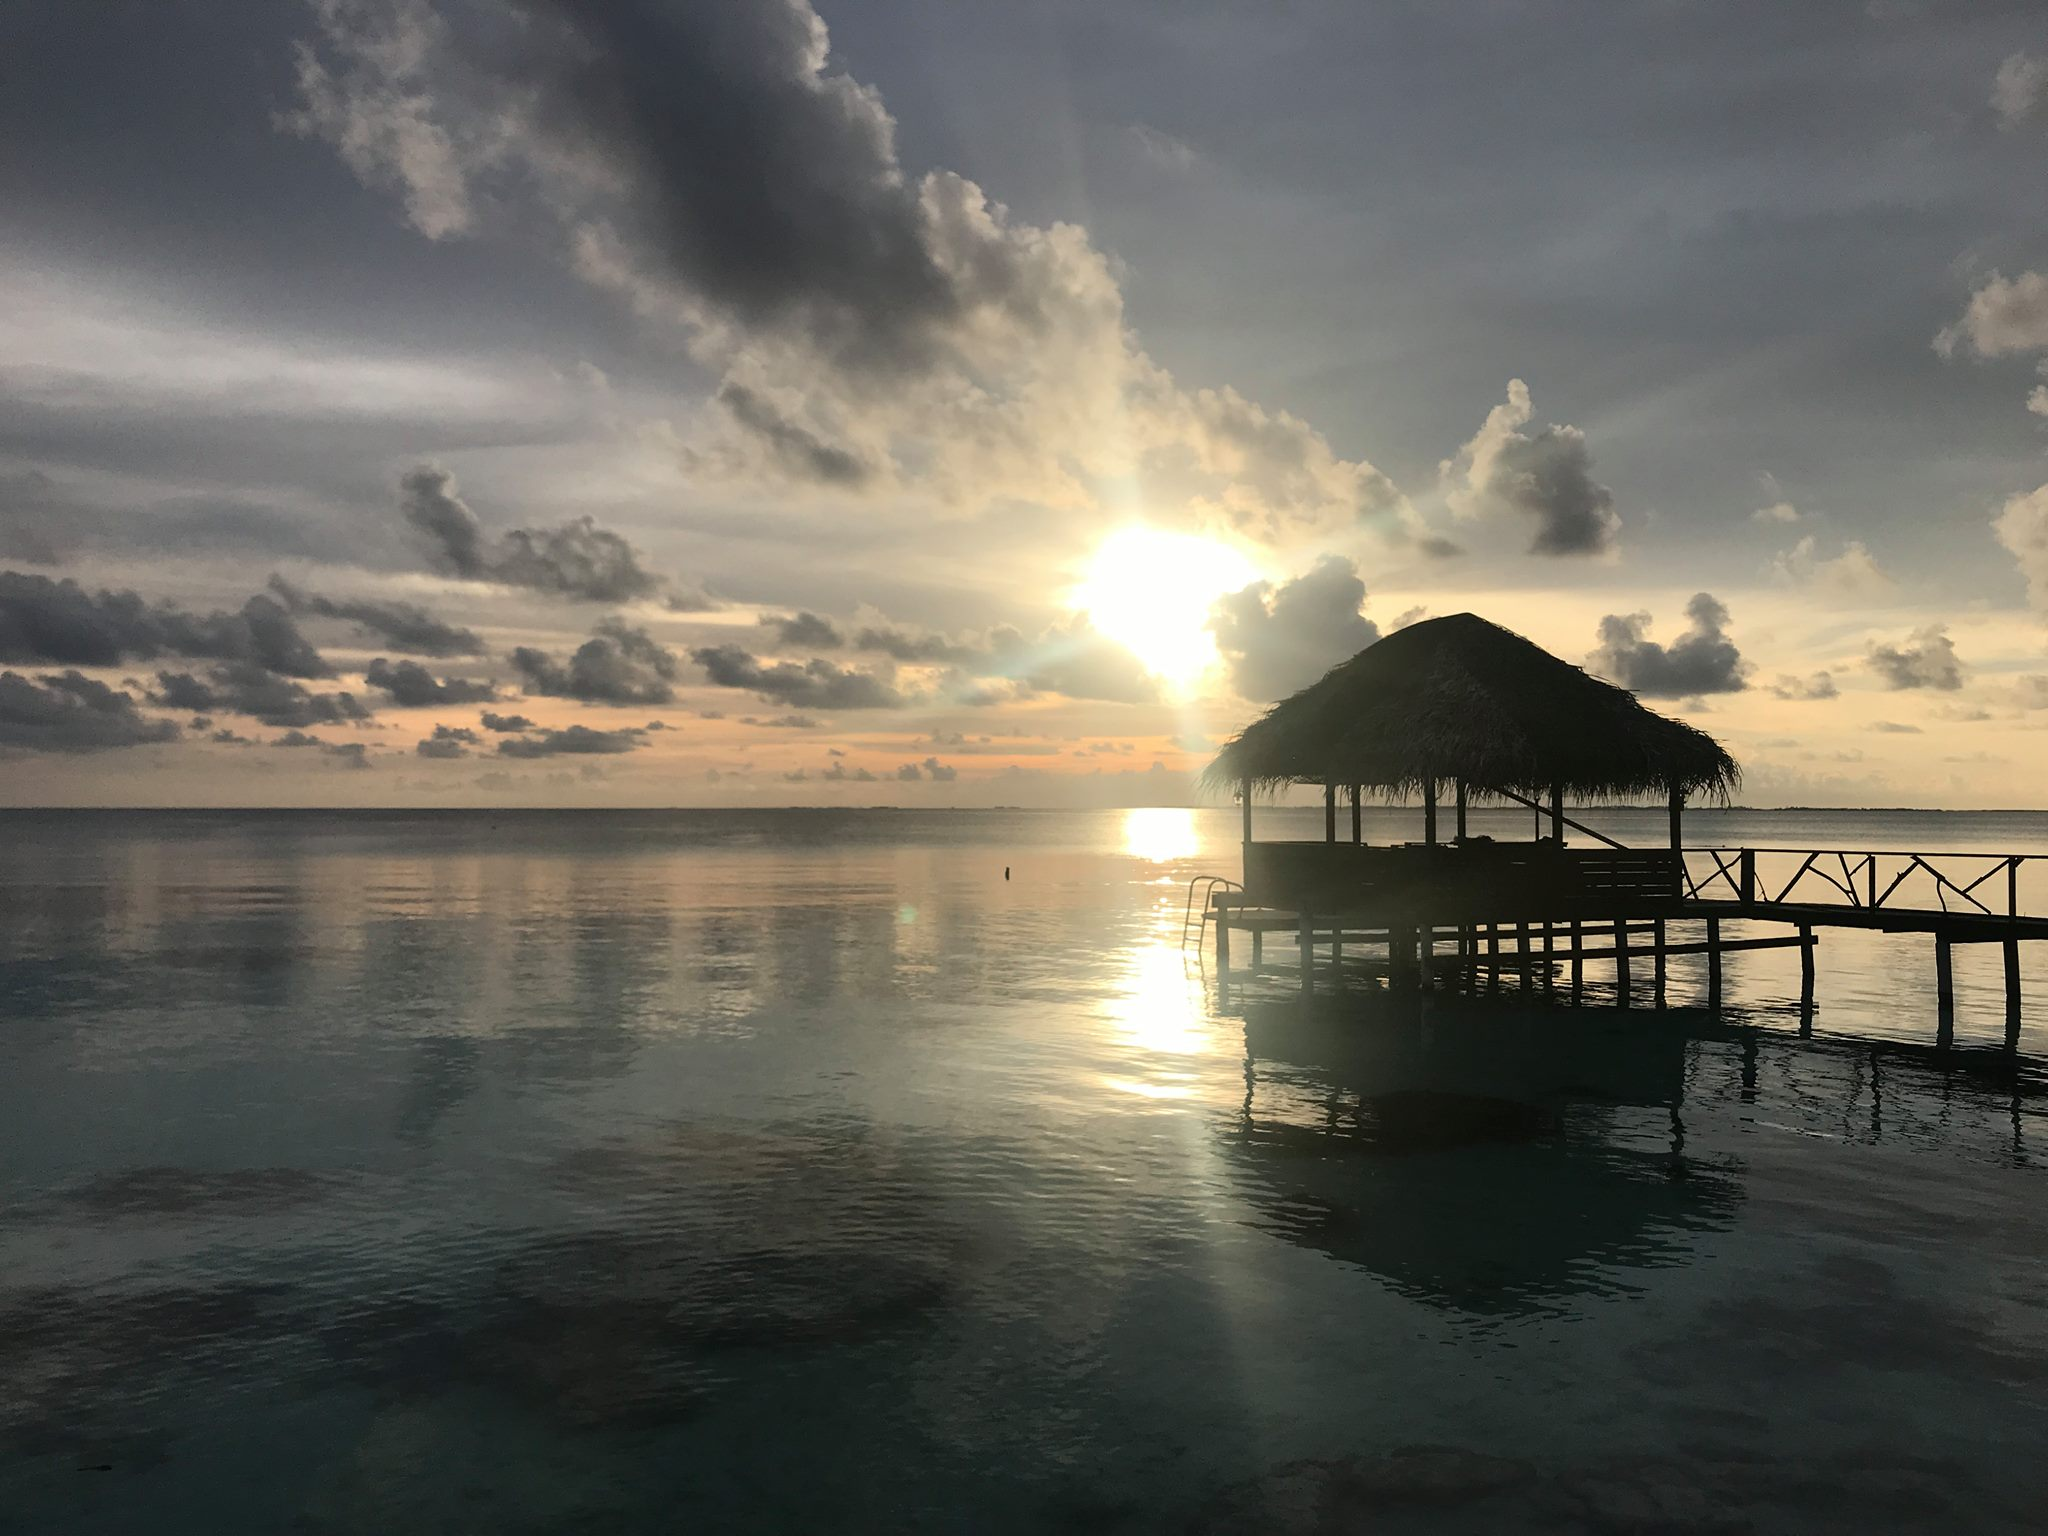 https://tahititourisme.be/wp-content/uploads/2017/08/vuecouchedesoleil.jpg